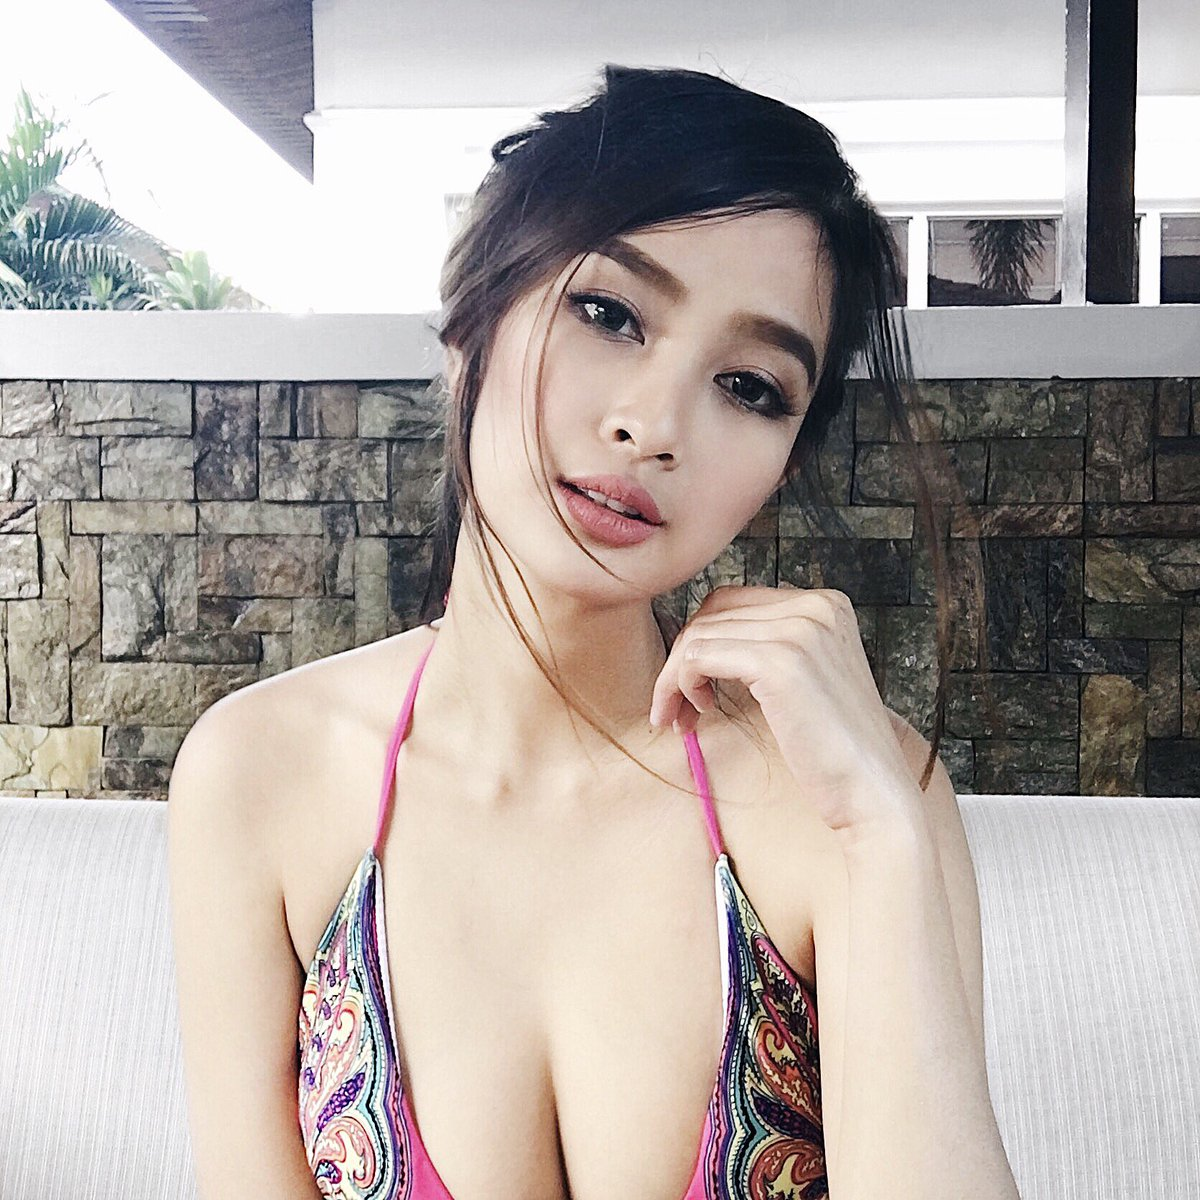 Philipino women,Philippines dating,